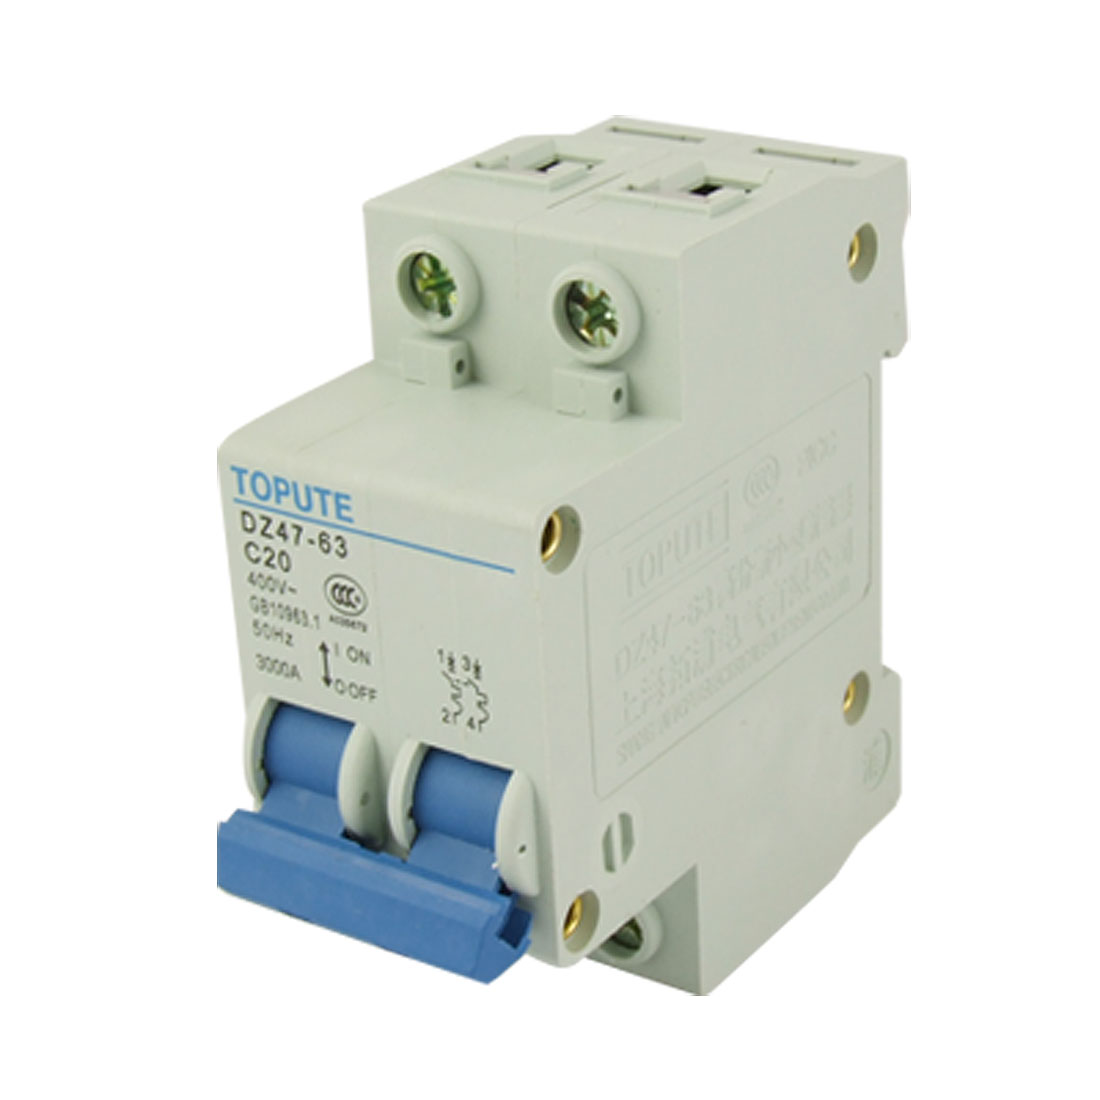 AC 400V Rated Current 20A Double Pole MCB Air Circuit Breaker